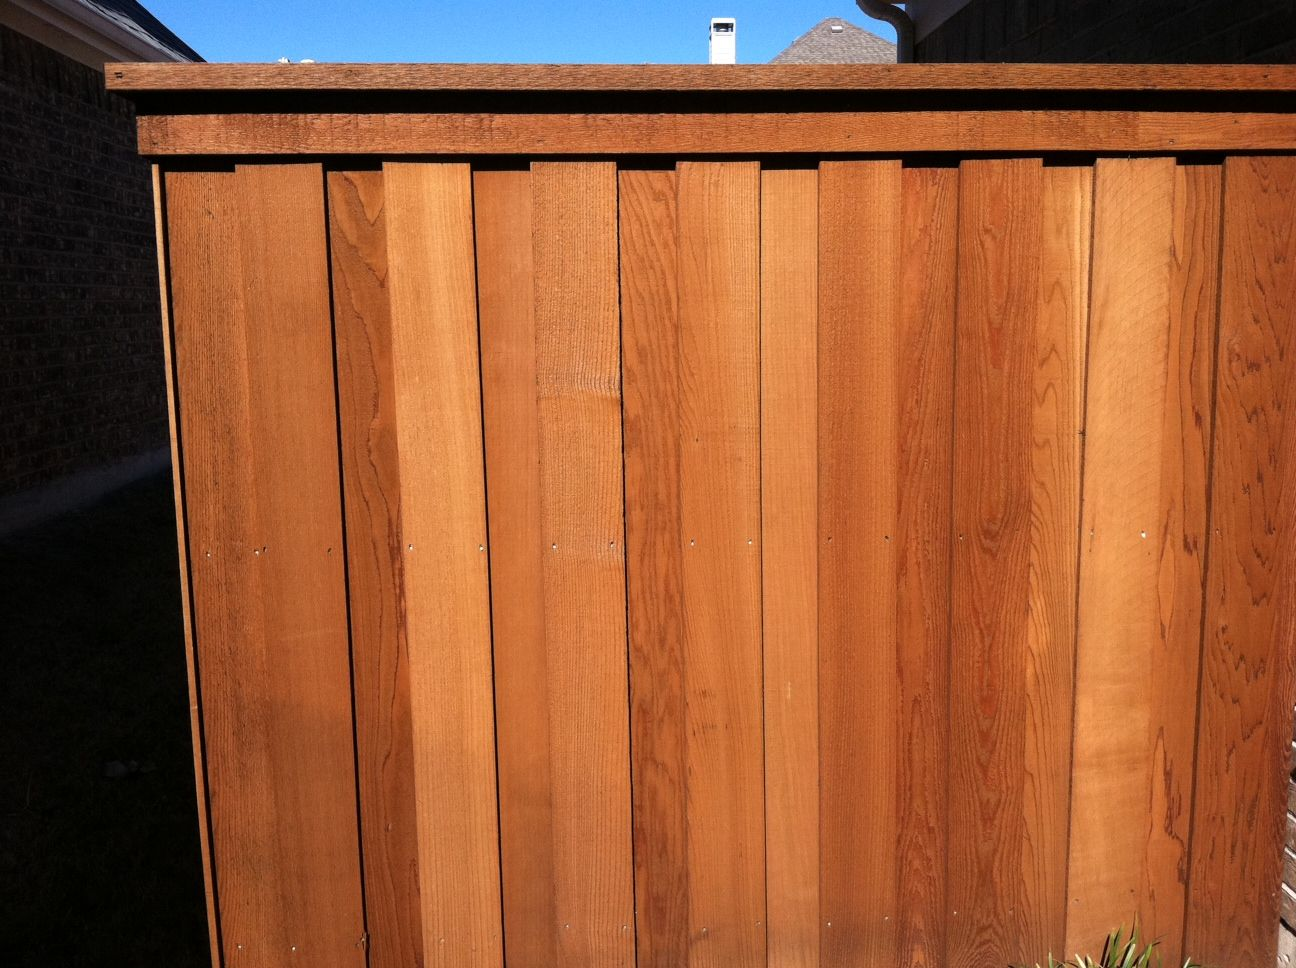 Privacy fences lewisville tx cedar wood privacy fence 8 ft privacy fences lewisville tx cedar wood privacy fence 8 ft baanklon Choice Image